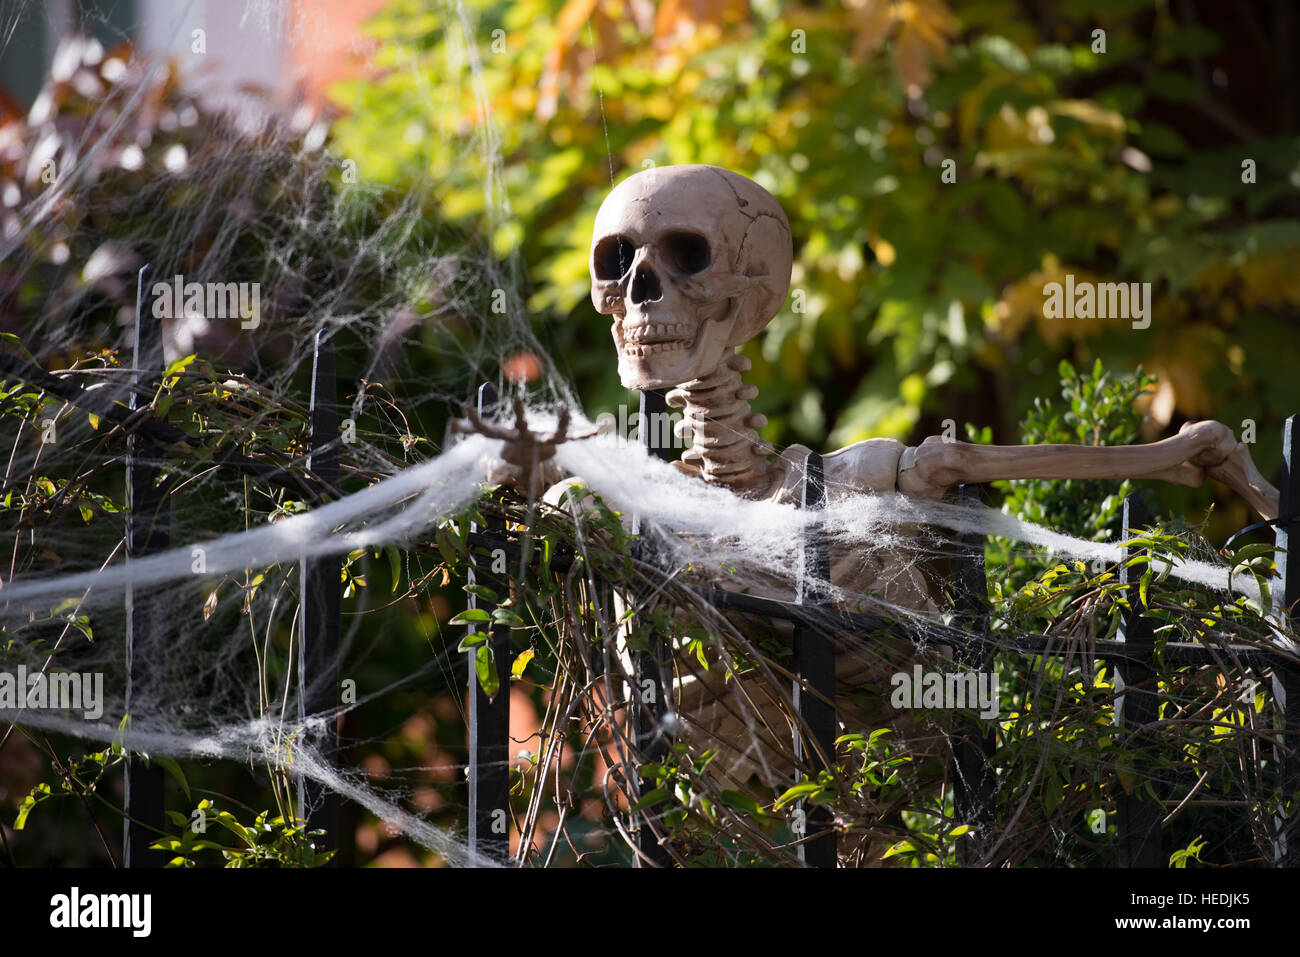 Funny Skeletons High Resolution Stock Photography And Images Alamy